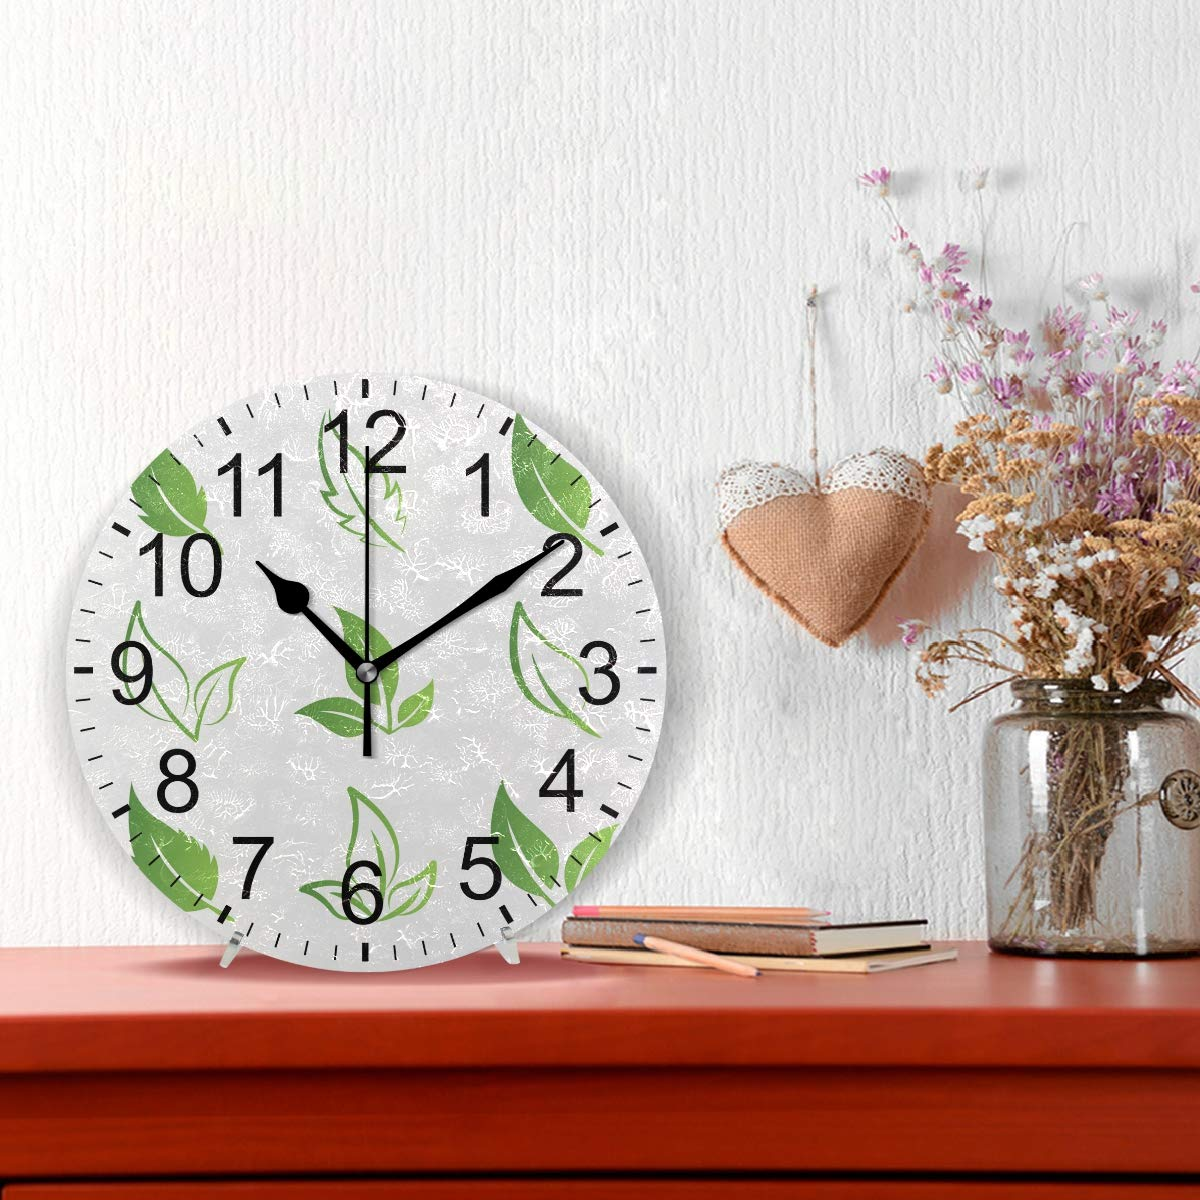 Atzucl Green Leaves Round Wall Clock Silent Non Ticking Quartz Final Schematic 400 Decorative For Room Home Kitchen